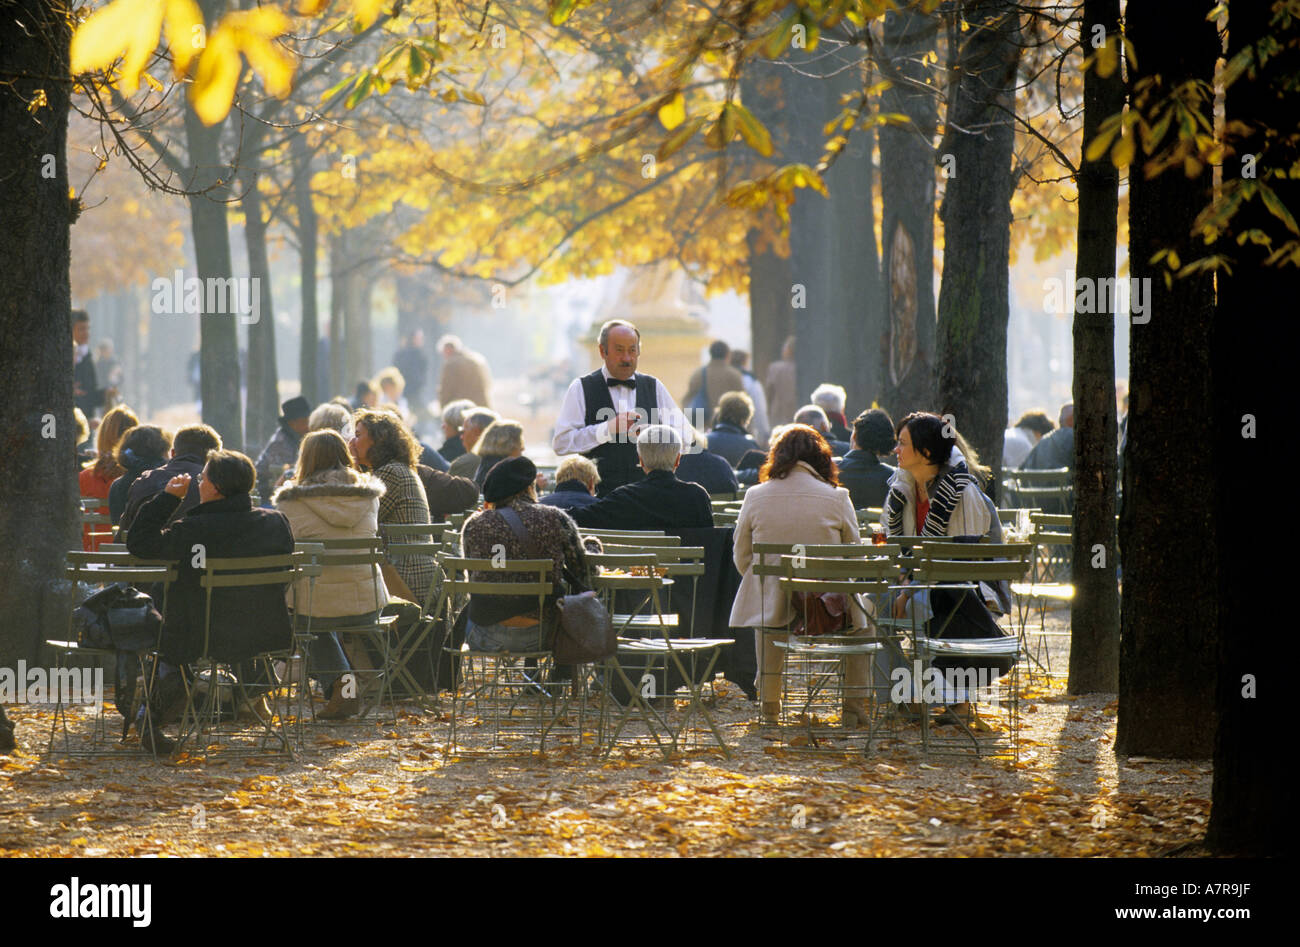 France paris jardin du luxembourg garden of luxembourg for Cafe jardin du luxembourg